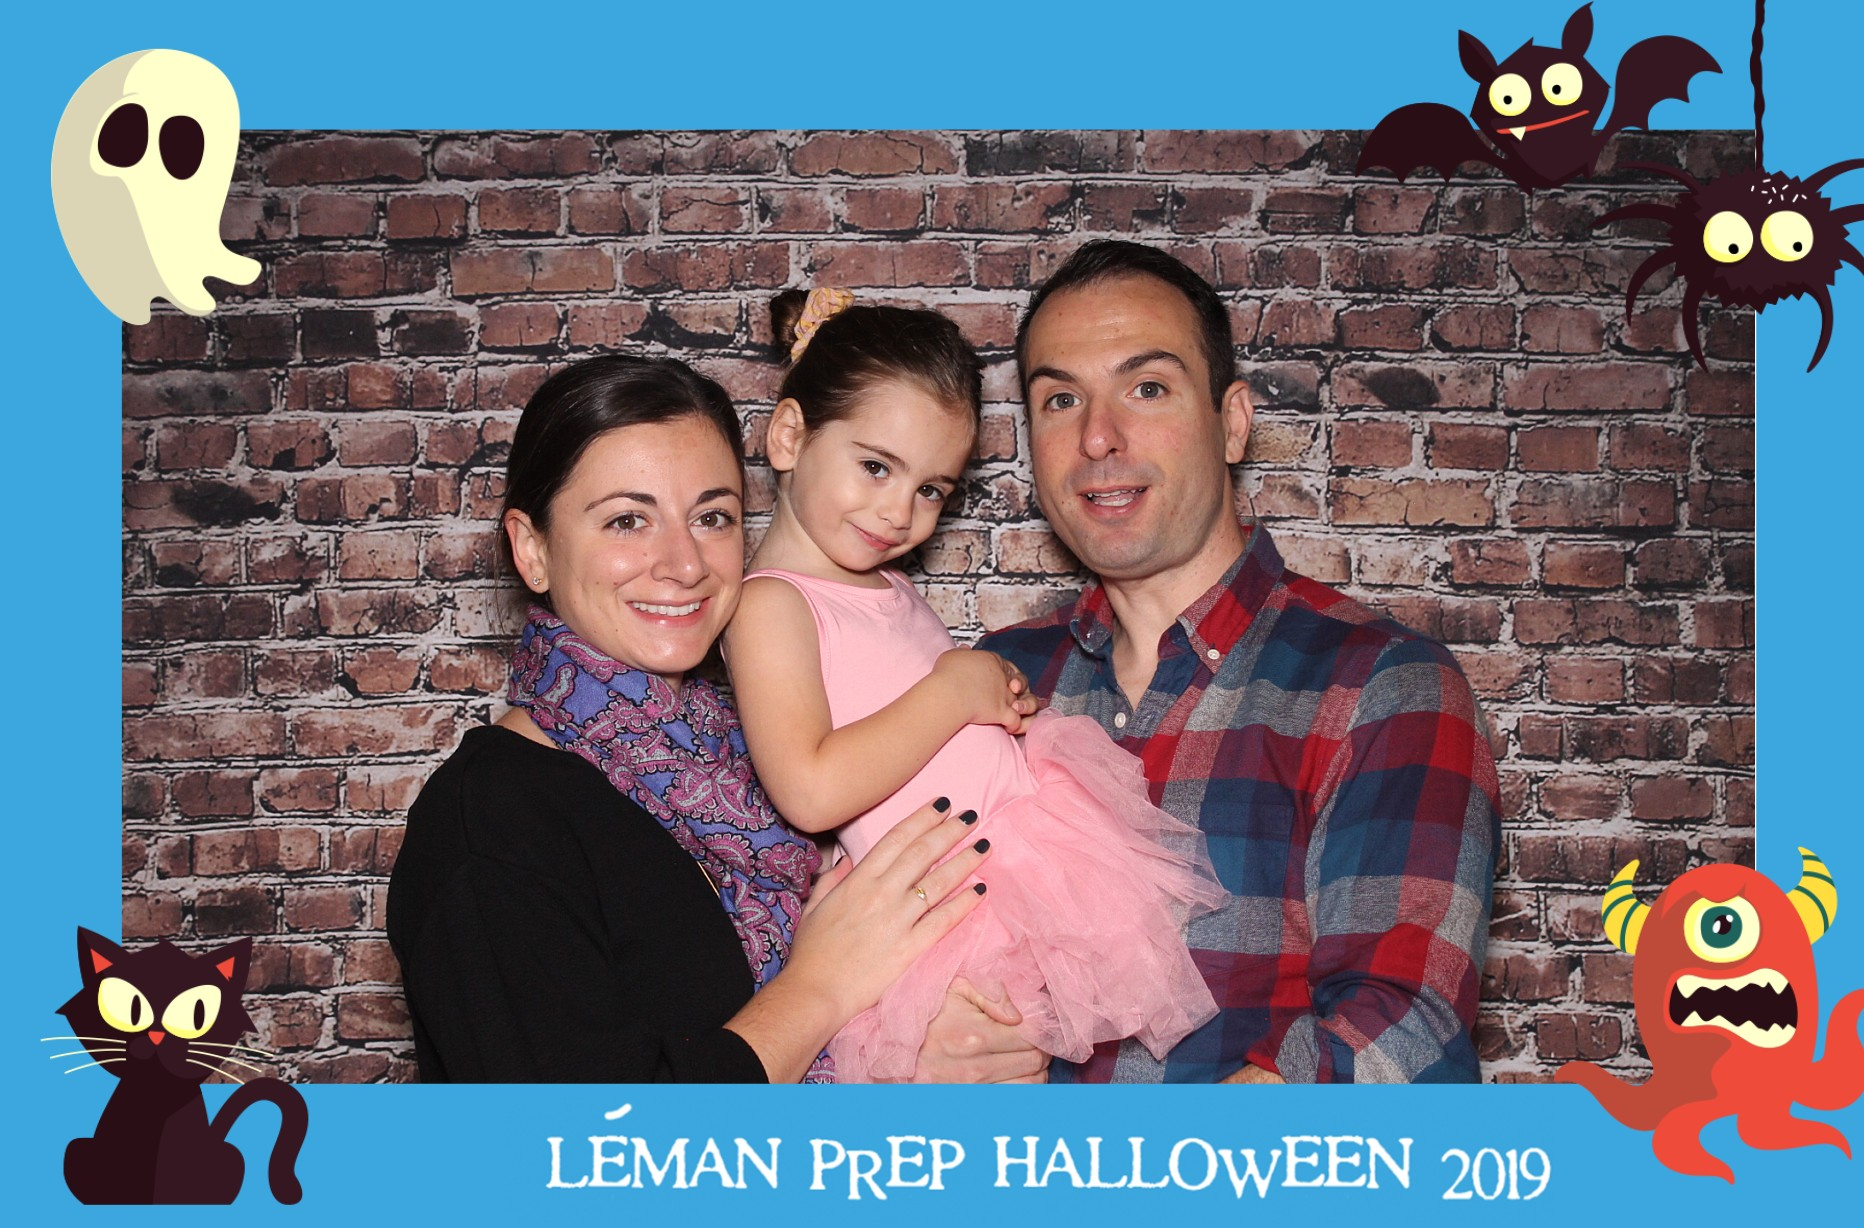 Selfie Station Photo Booth Rental Holiday Party Lehman Prep NY (25)